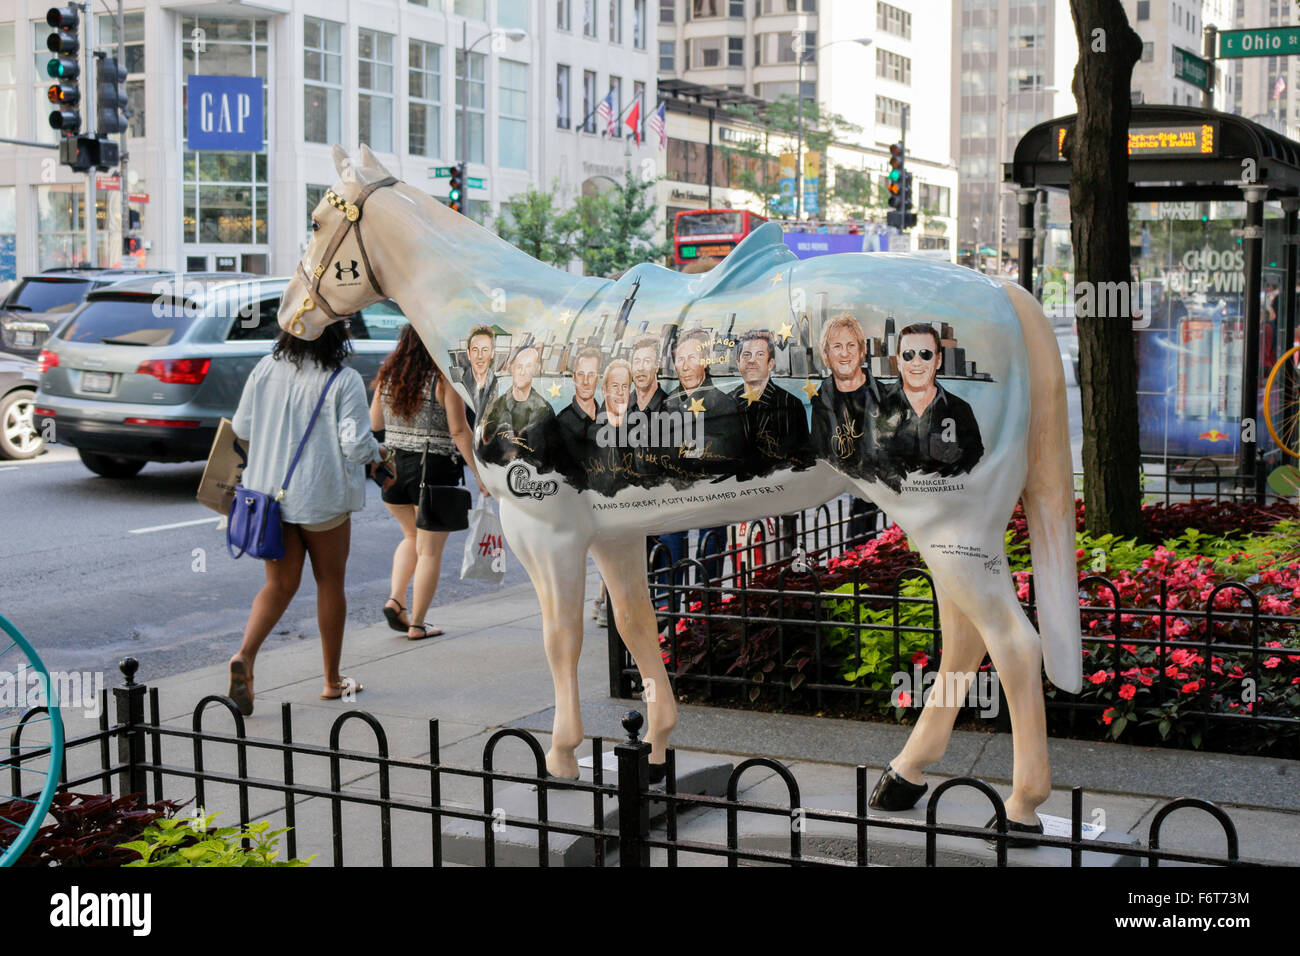 Musical group 'Chicago' painting on fiberglass horse. Michigan Avenue, Chicago, Illinois. - Stock Image